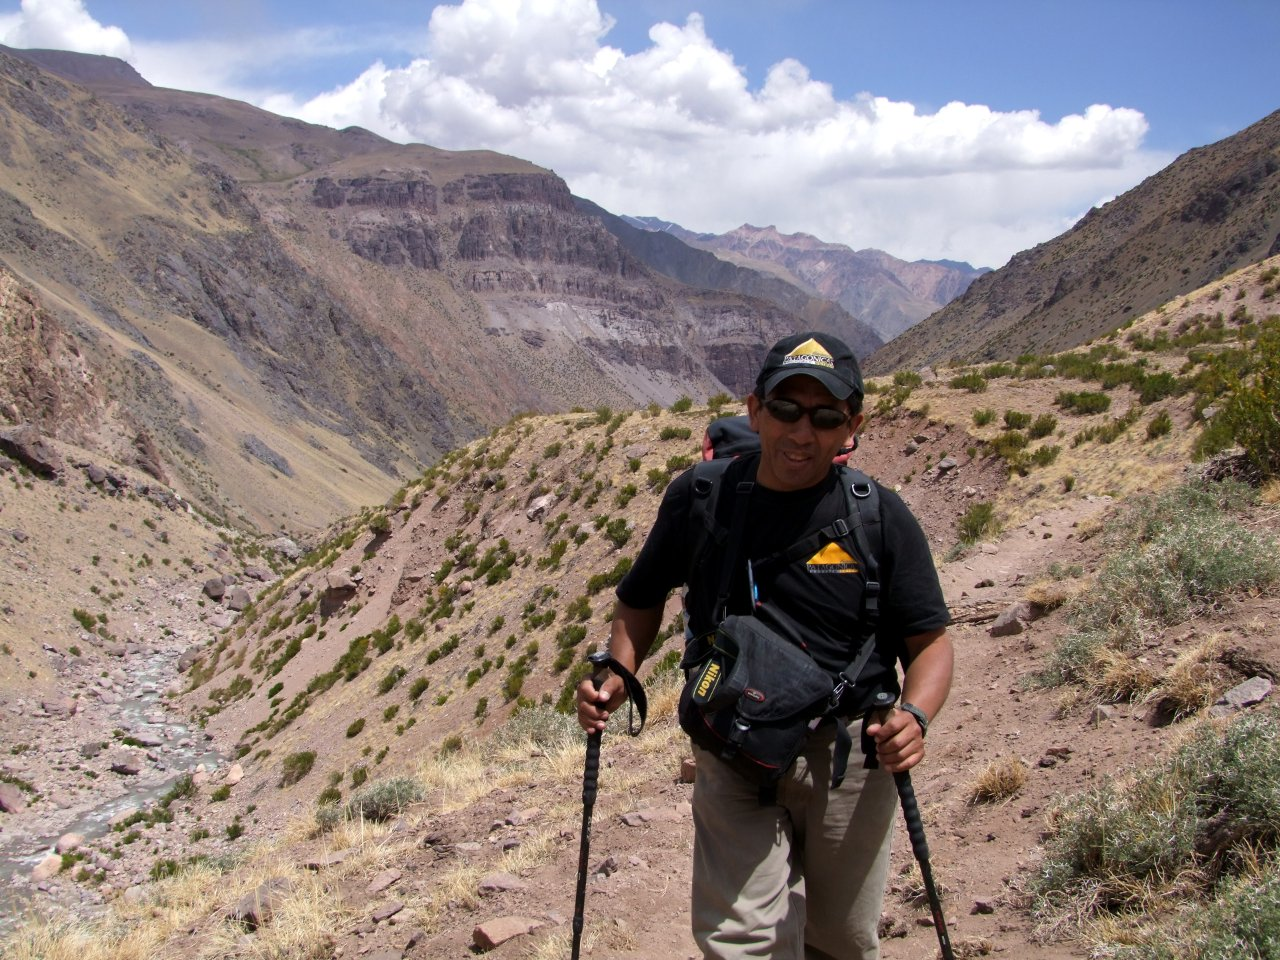 Aconcagua climb wasted by Aventuras Patagonicas - Review ...